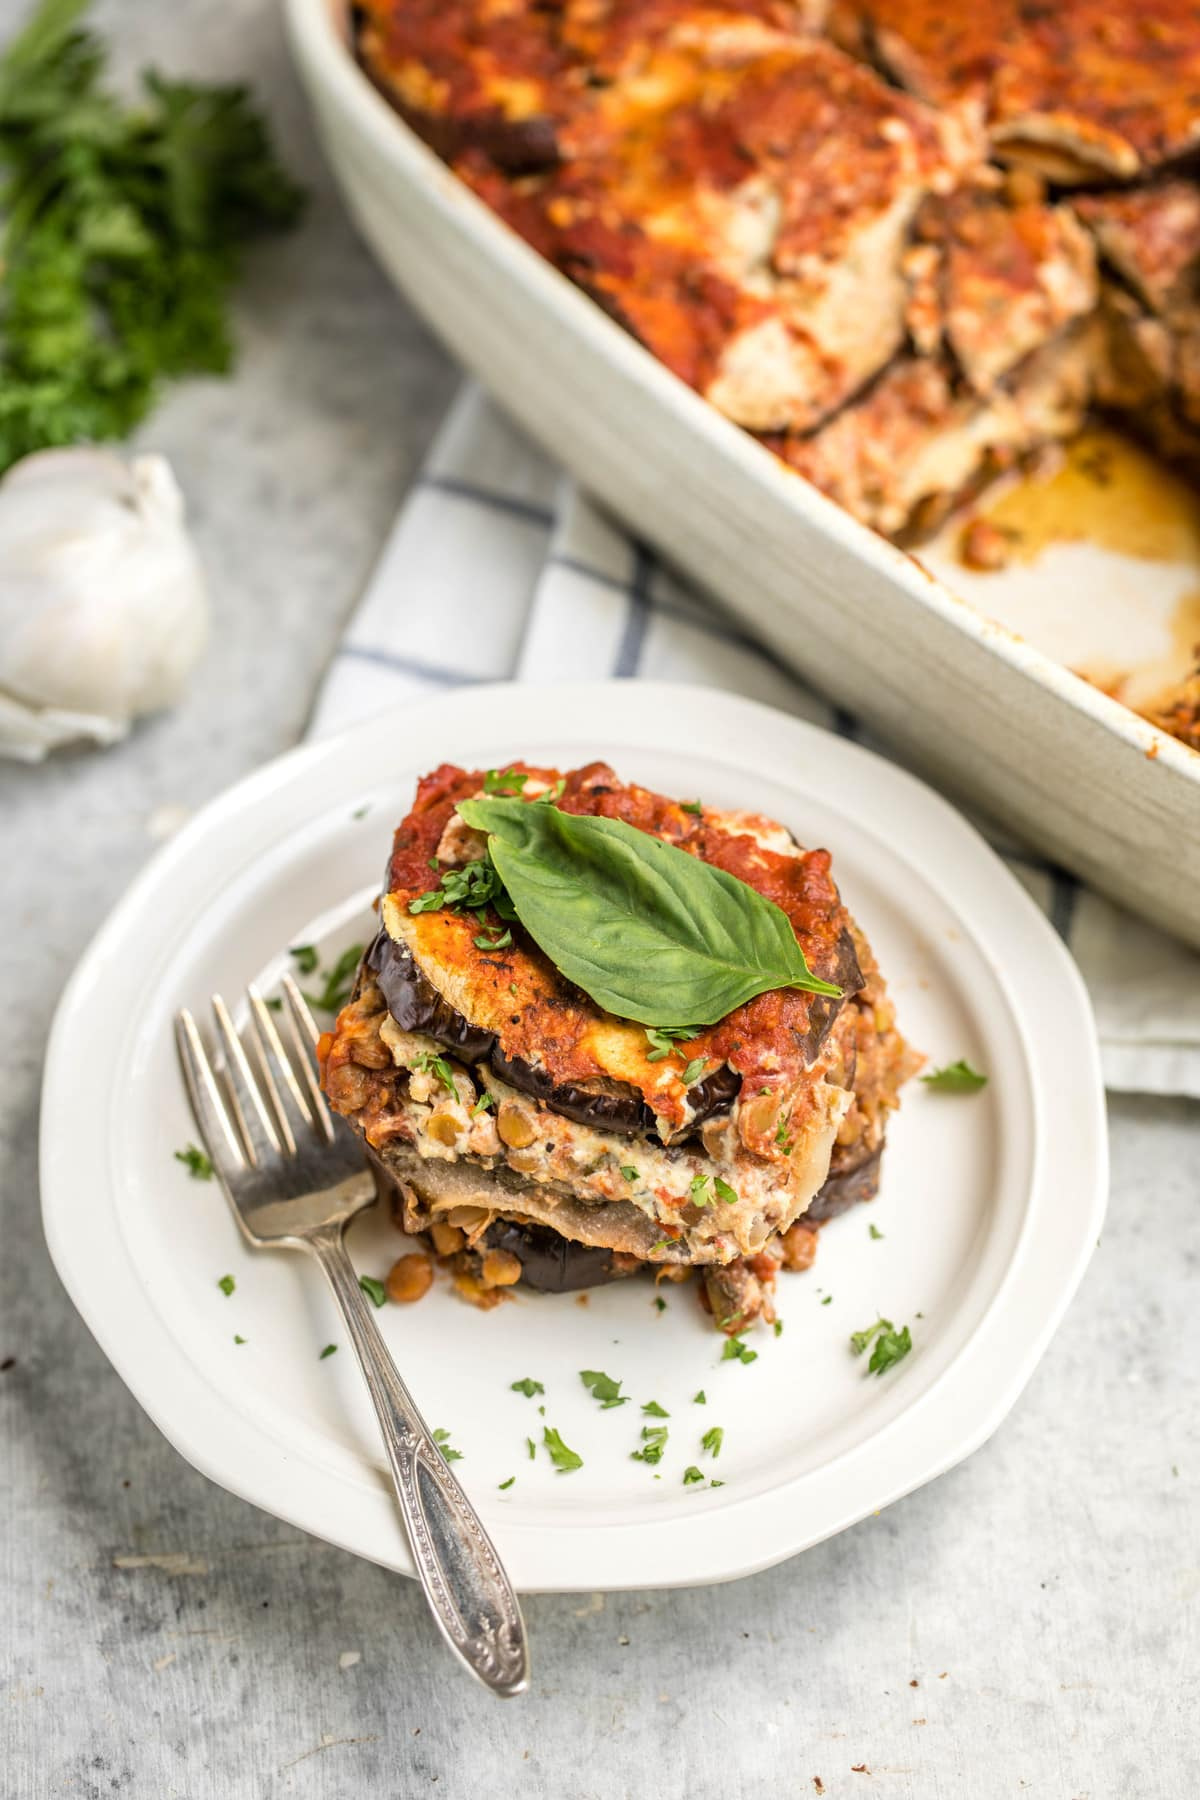 slice of vegan eggplant lasagna on small white plate with larger casserole dish in the background